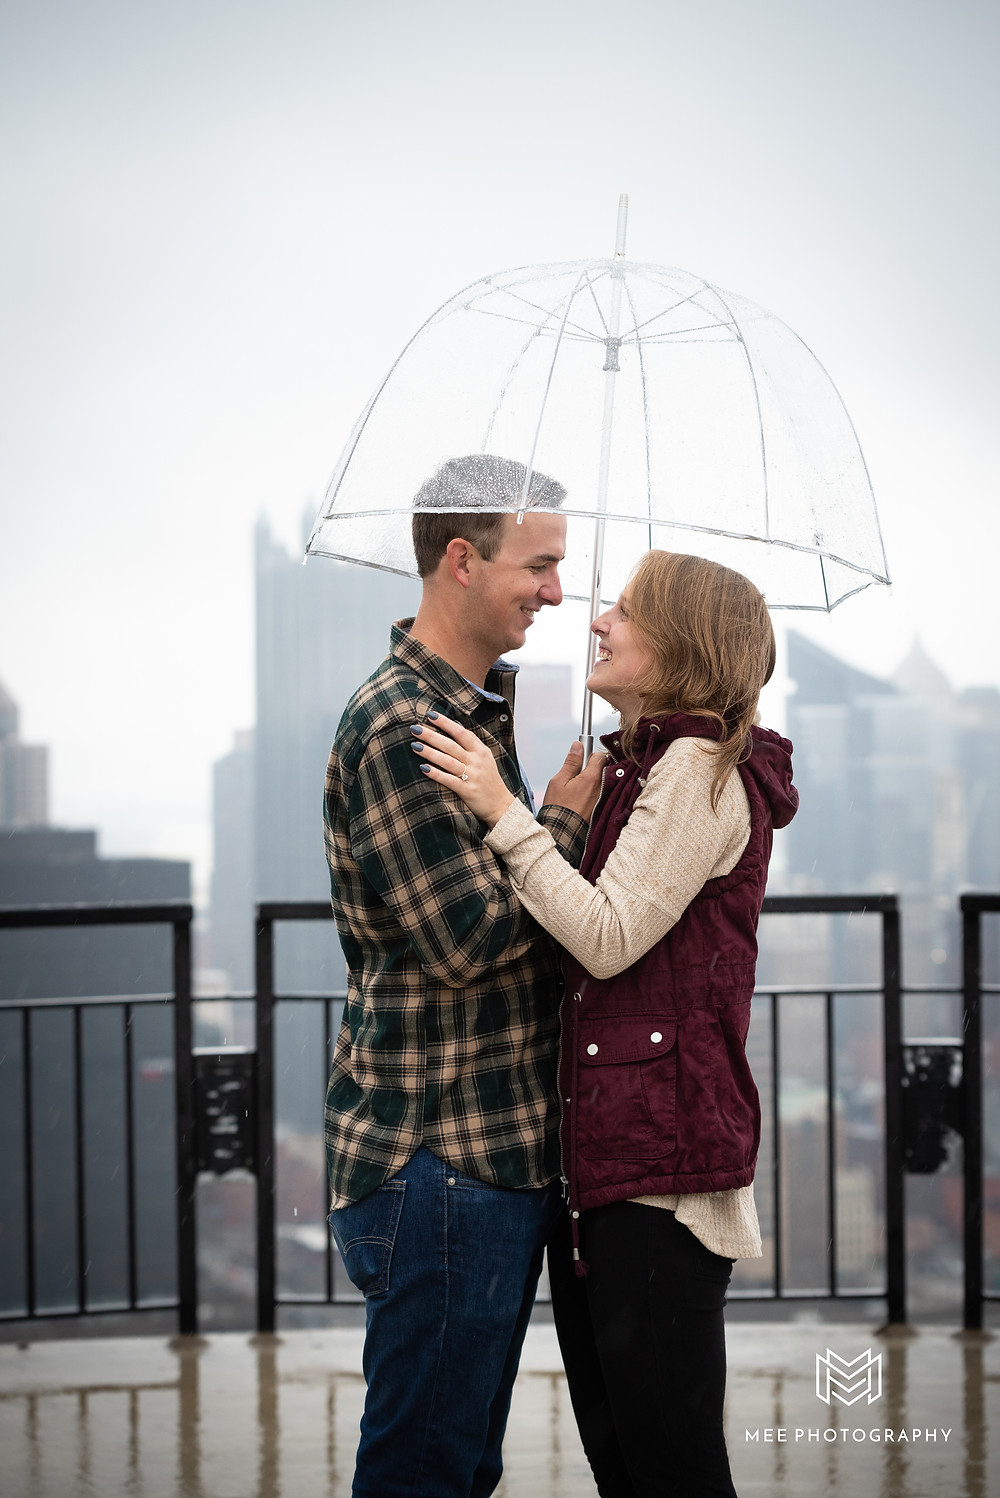 Newly engaged couple laughing under a clear umbrella in the rain on the Mount Washington Overlook